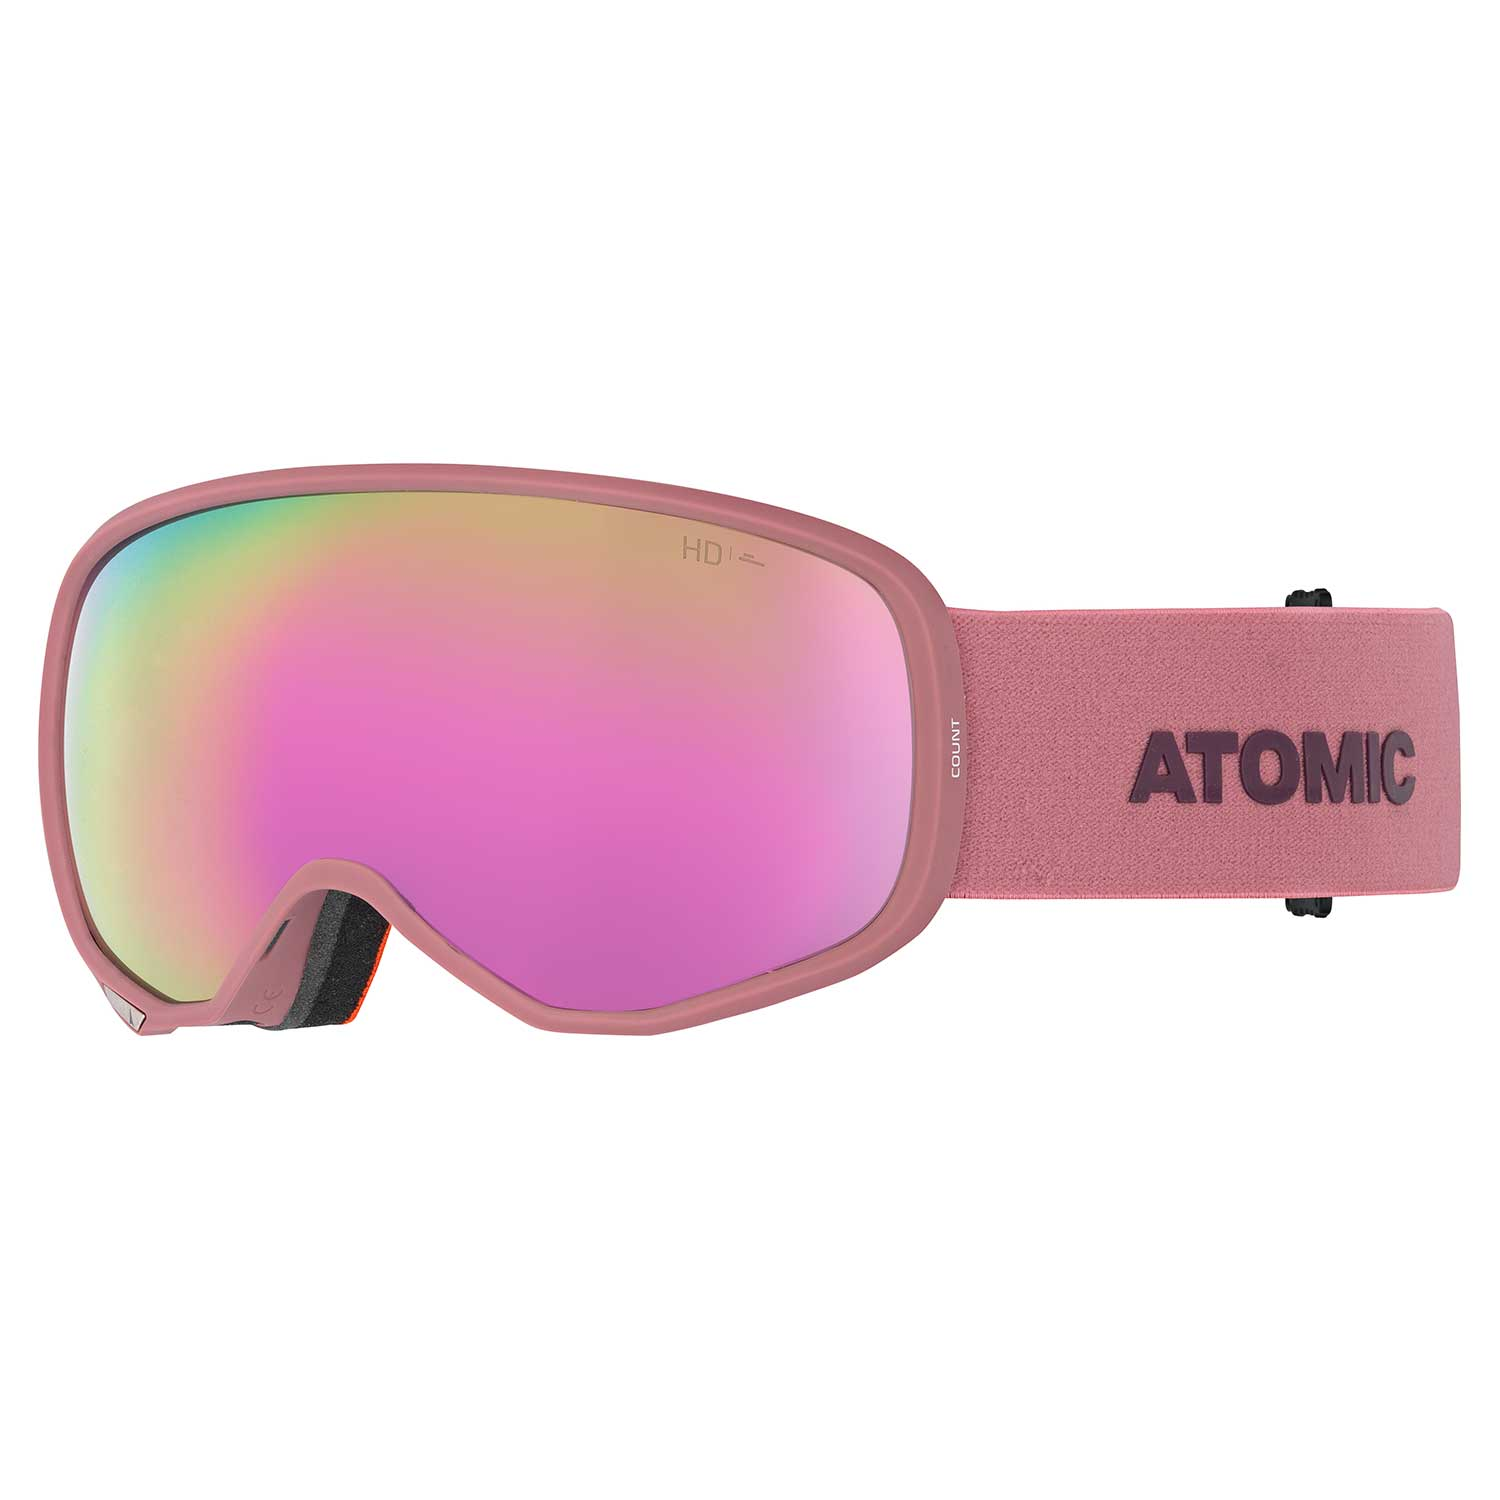 Atomic Count S HD Goggle Rose/Nightshade 2020